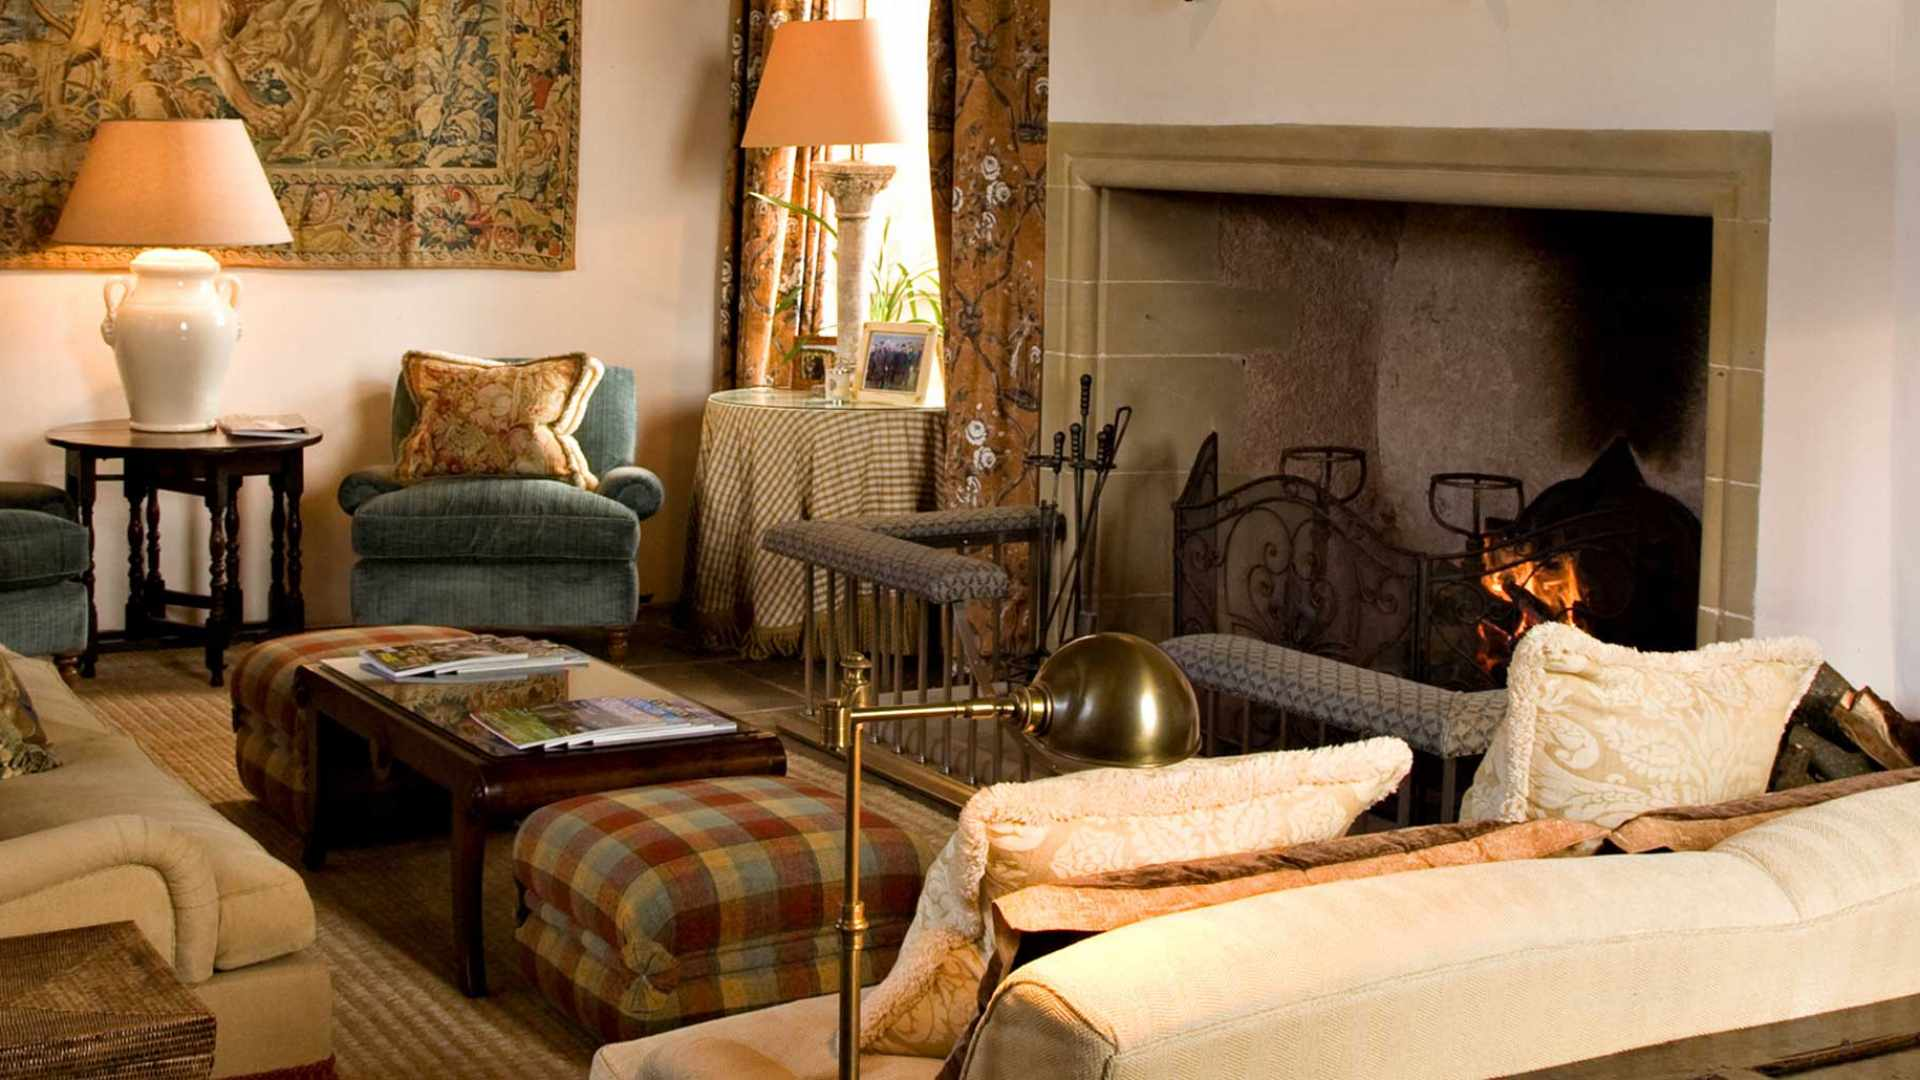 Fabulous example of an Inglenook fireplace, great hall and hanging tapestry